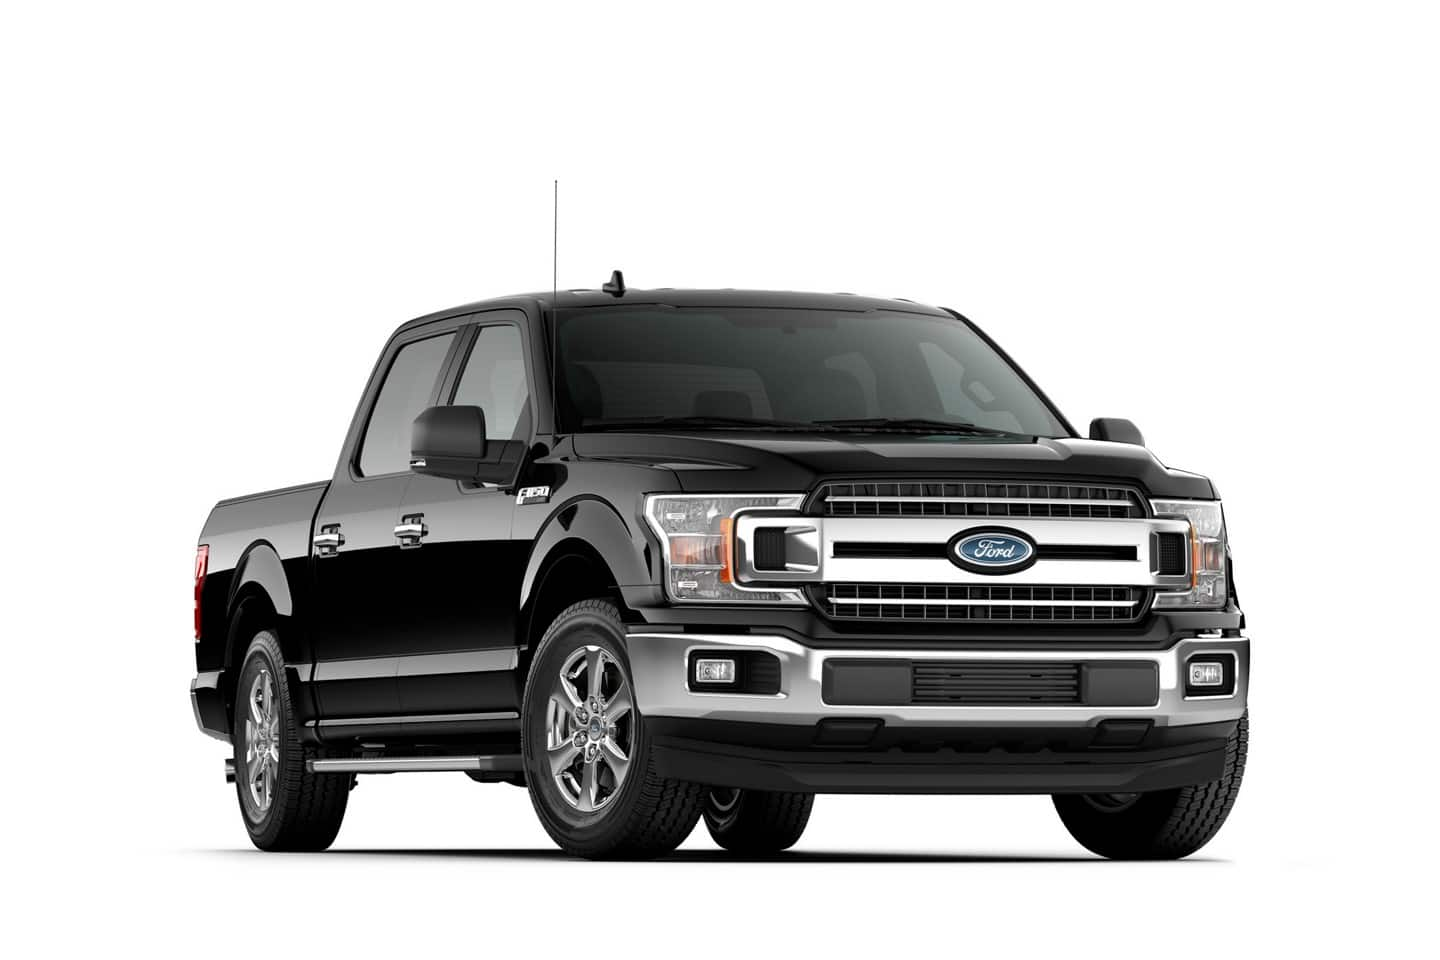 85 All New 2019 Ford F 150 Release Date And Concept